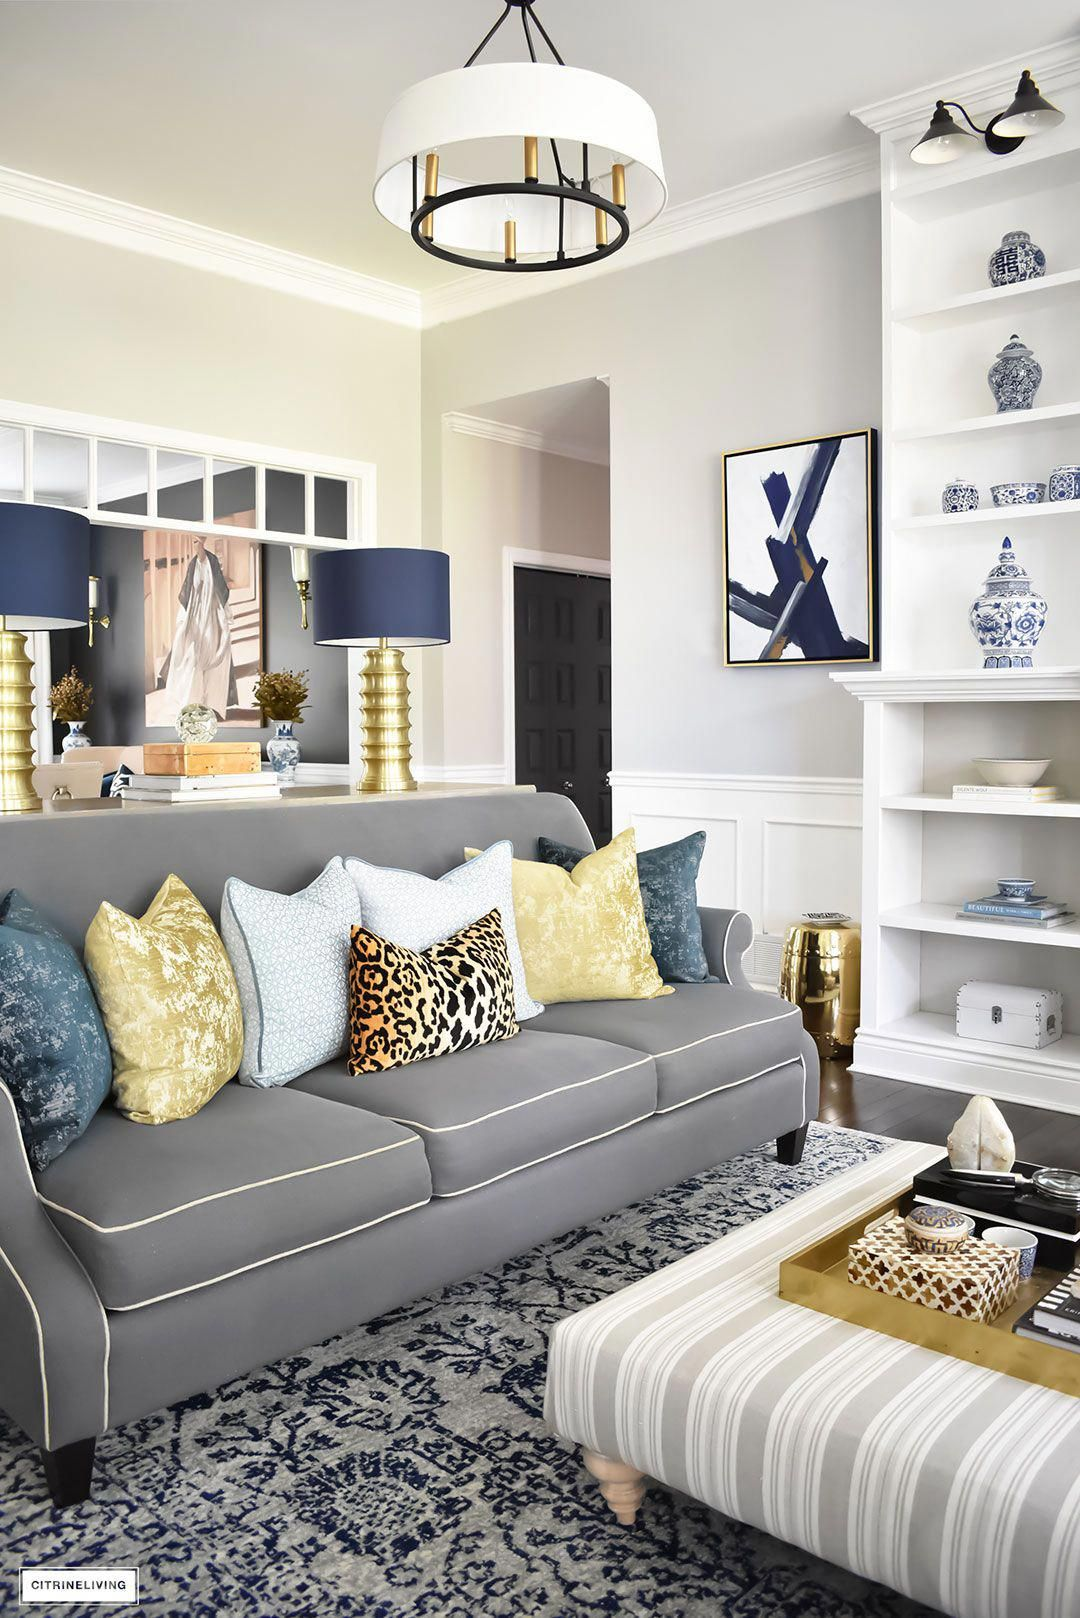 Fall Home Tour Featuring This Elegant Living Room